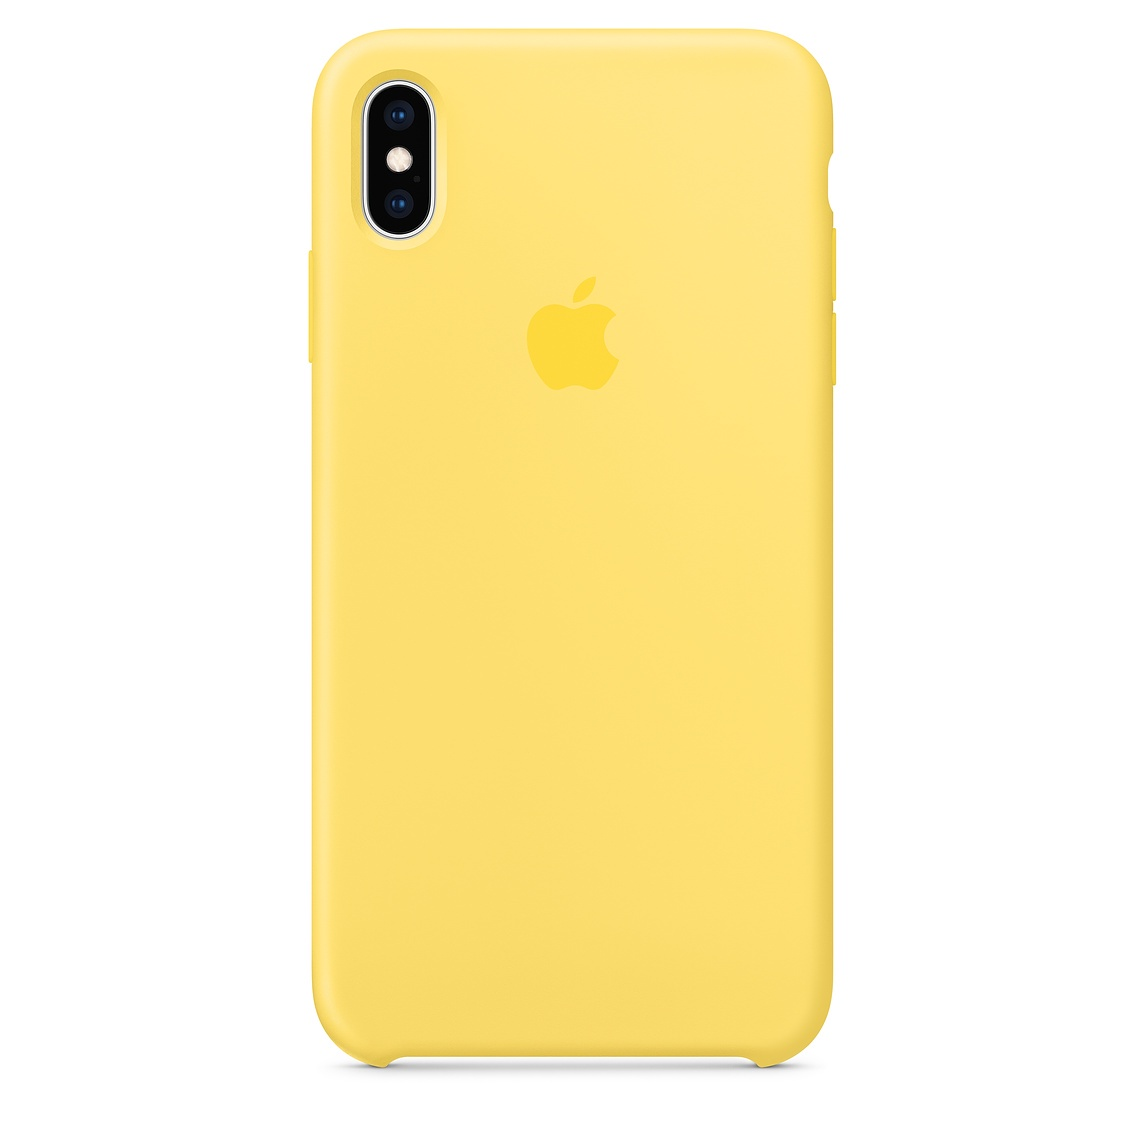 Чехол Apple Silicone Case для iPhone XS Max, Canary Yellow чехол для apple iphone xs max silicone case nectarine